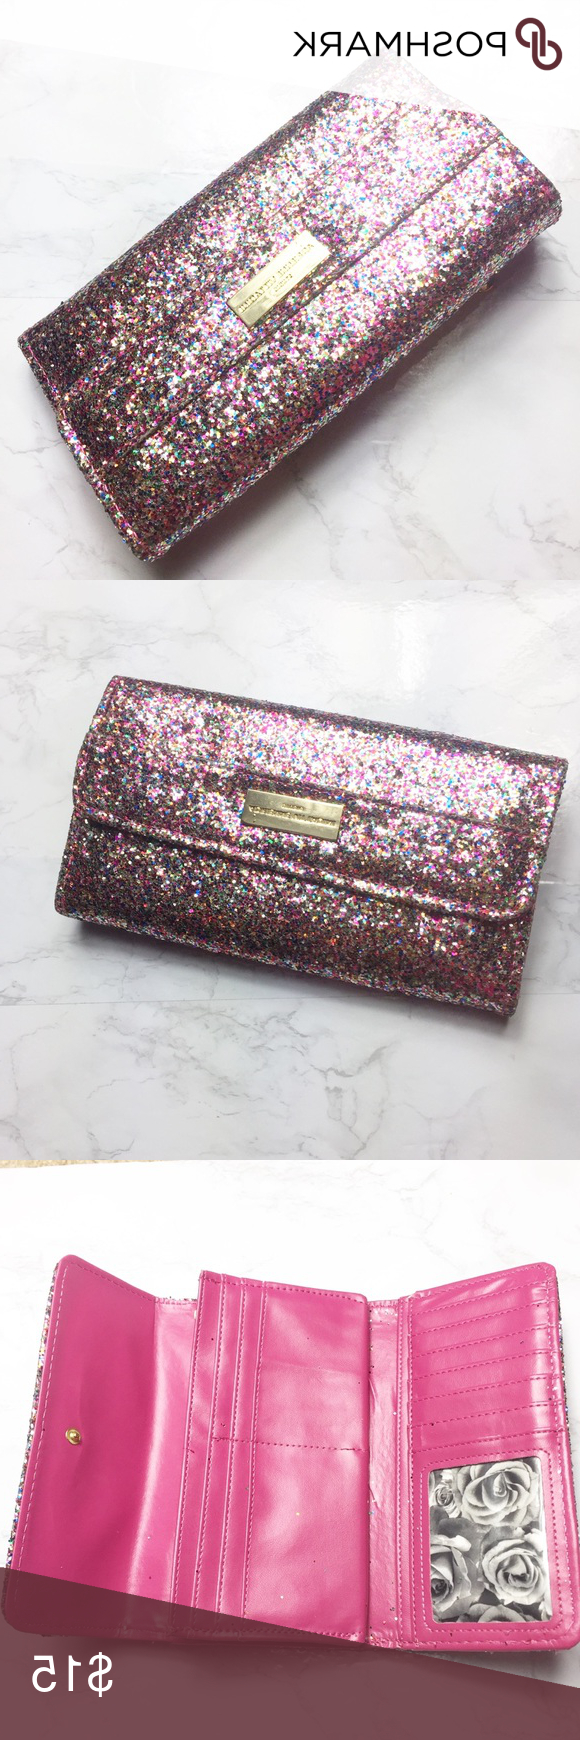 Adrienne Vittadini Glitter Wallet | My Posh Picks Throughout Juicy Guava Credenzas (View 15 of 20)